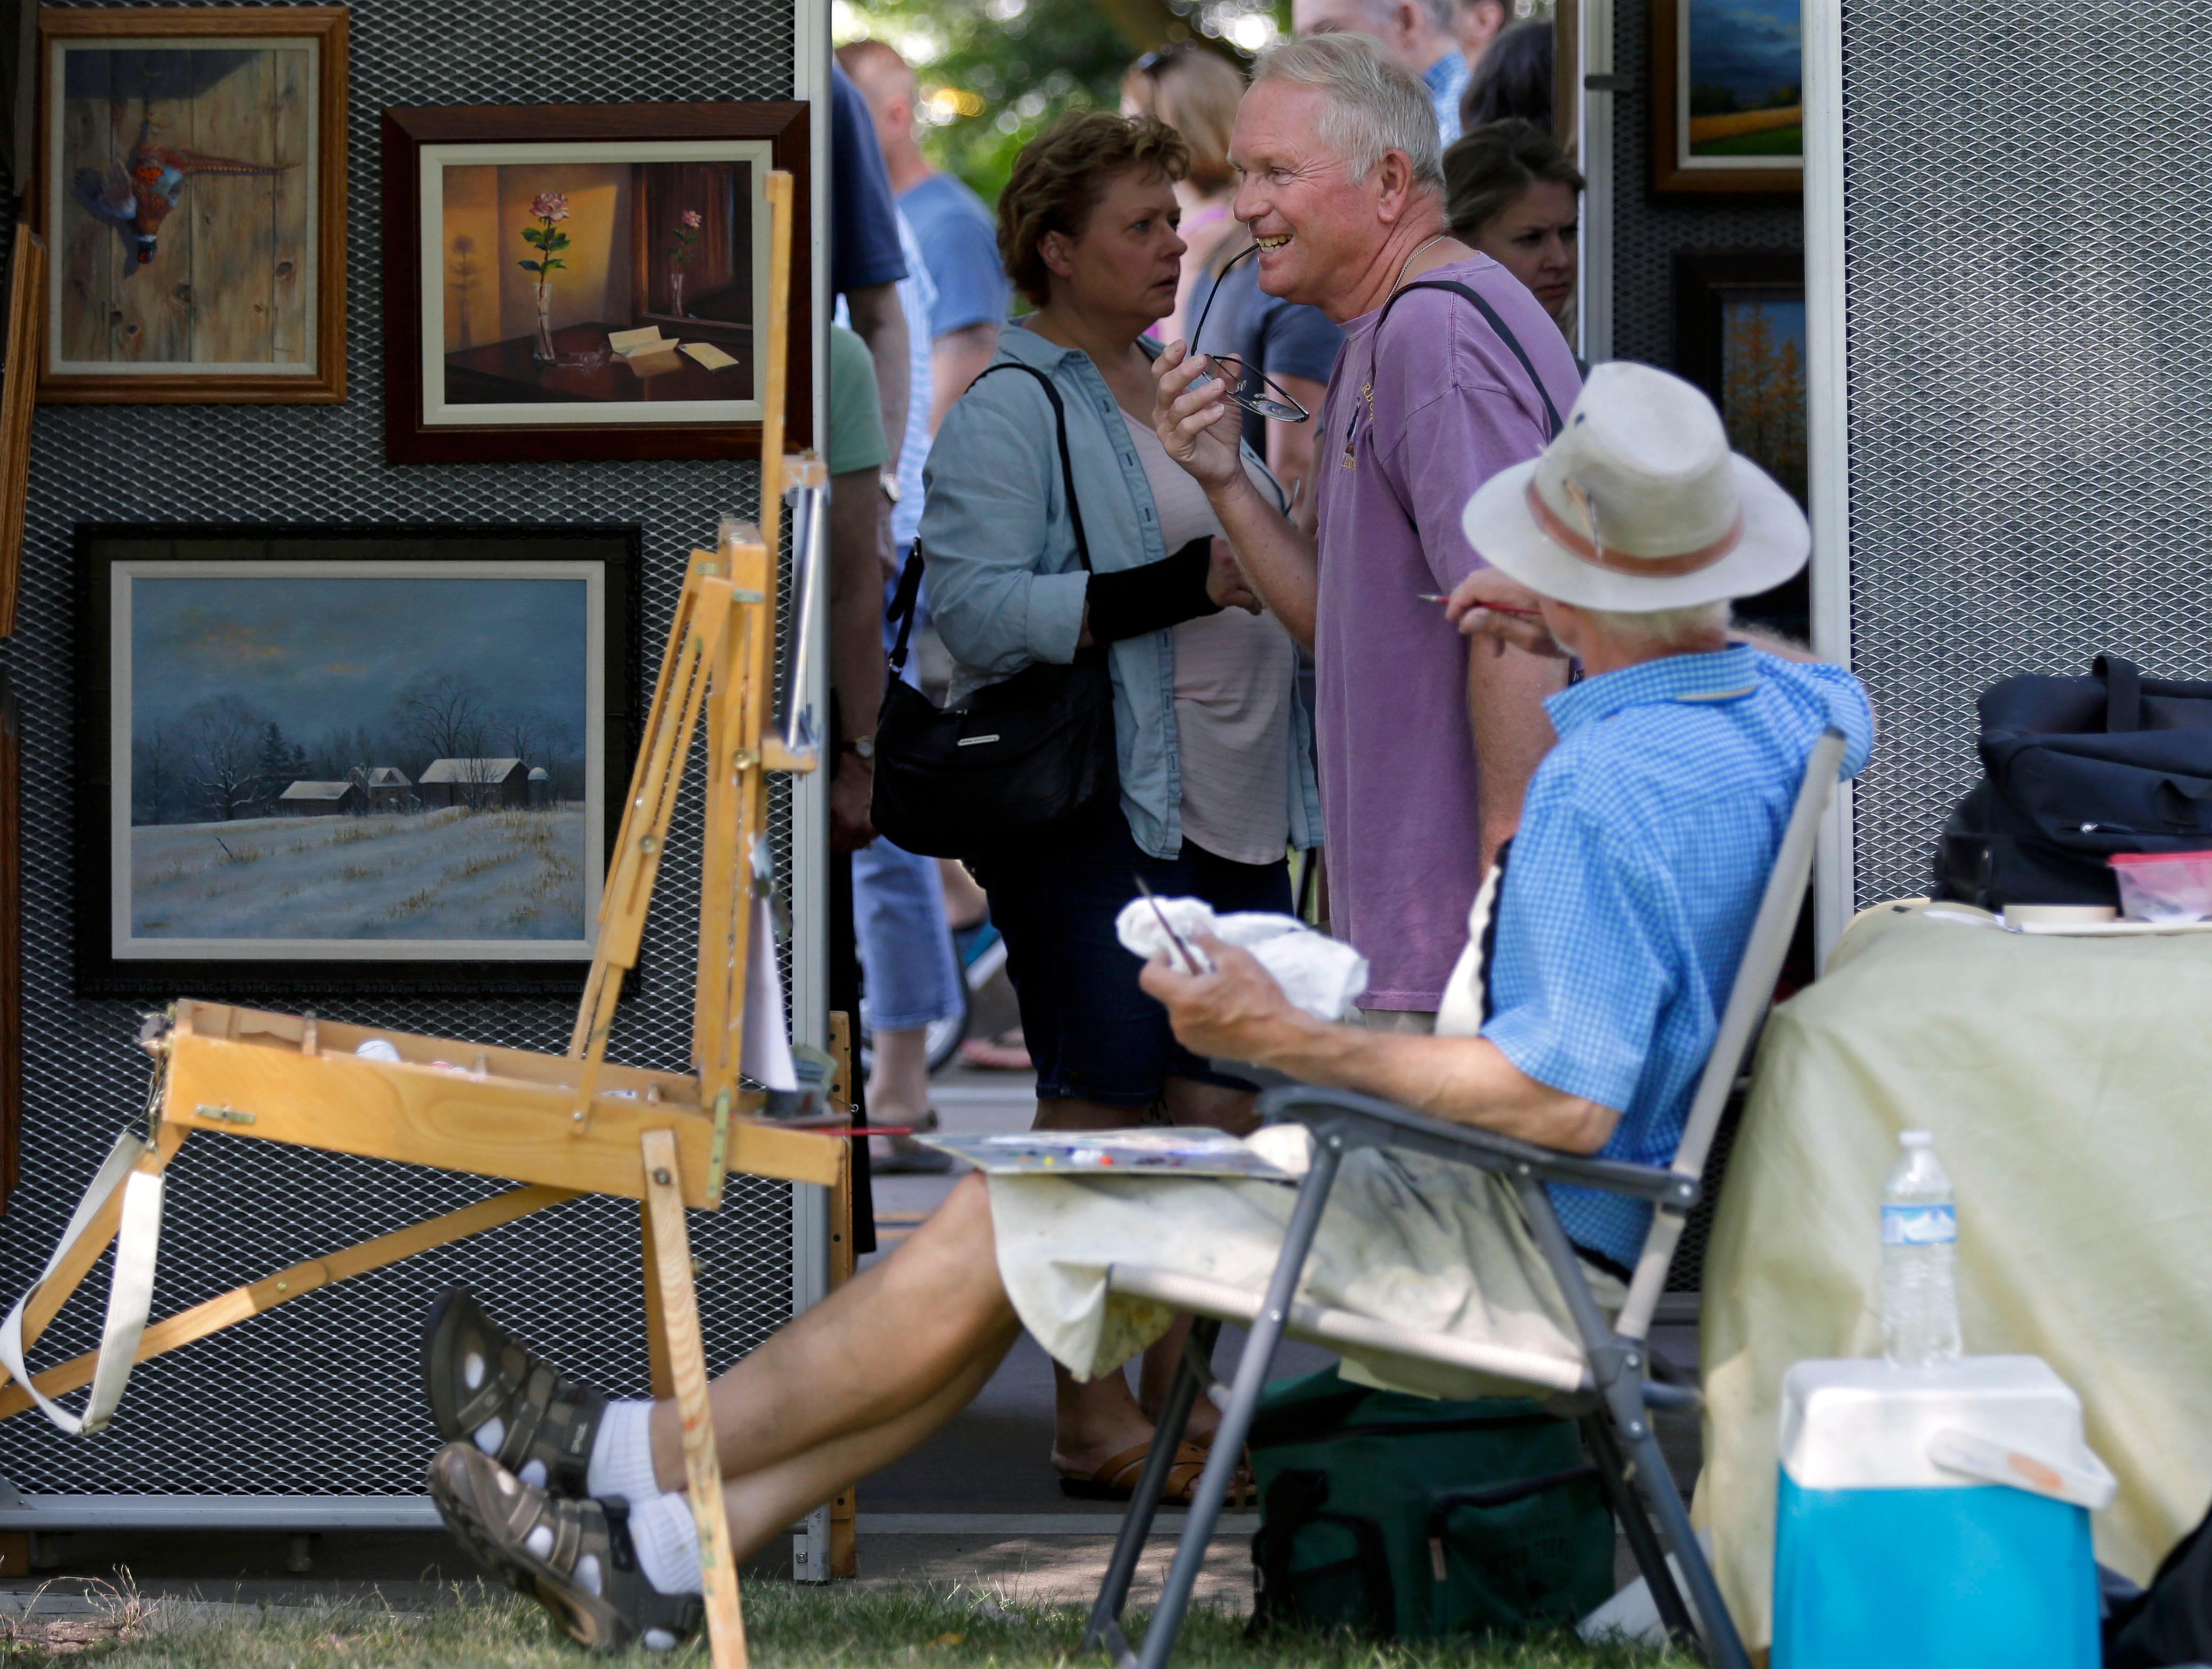 Greg Hartel visits with artist Bill Millonig as the 58th annual Art at the Park takes place Sunday, July 29, 2018, at City Park in Appleton, Wis.Ron Page/USA TODAY NETWORK-Wisconsin